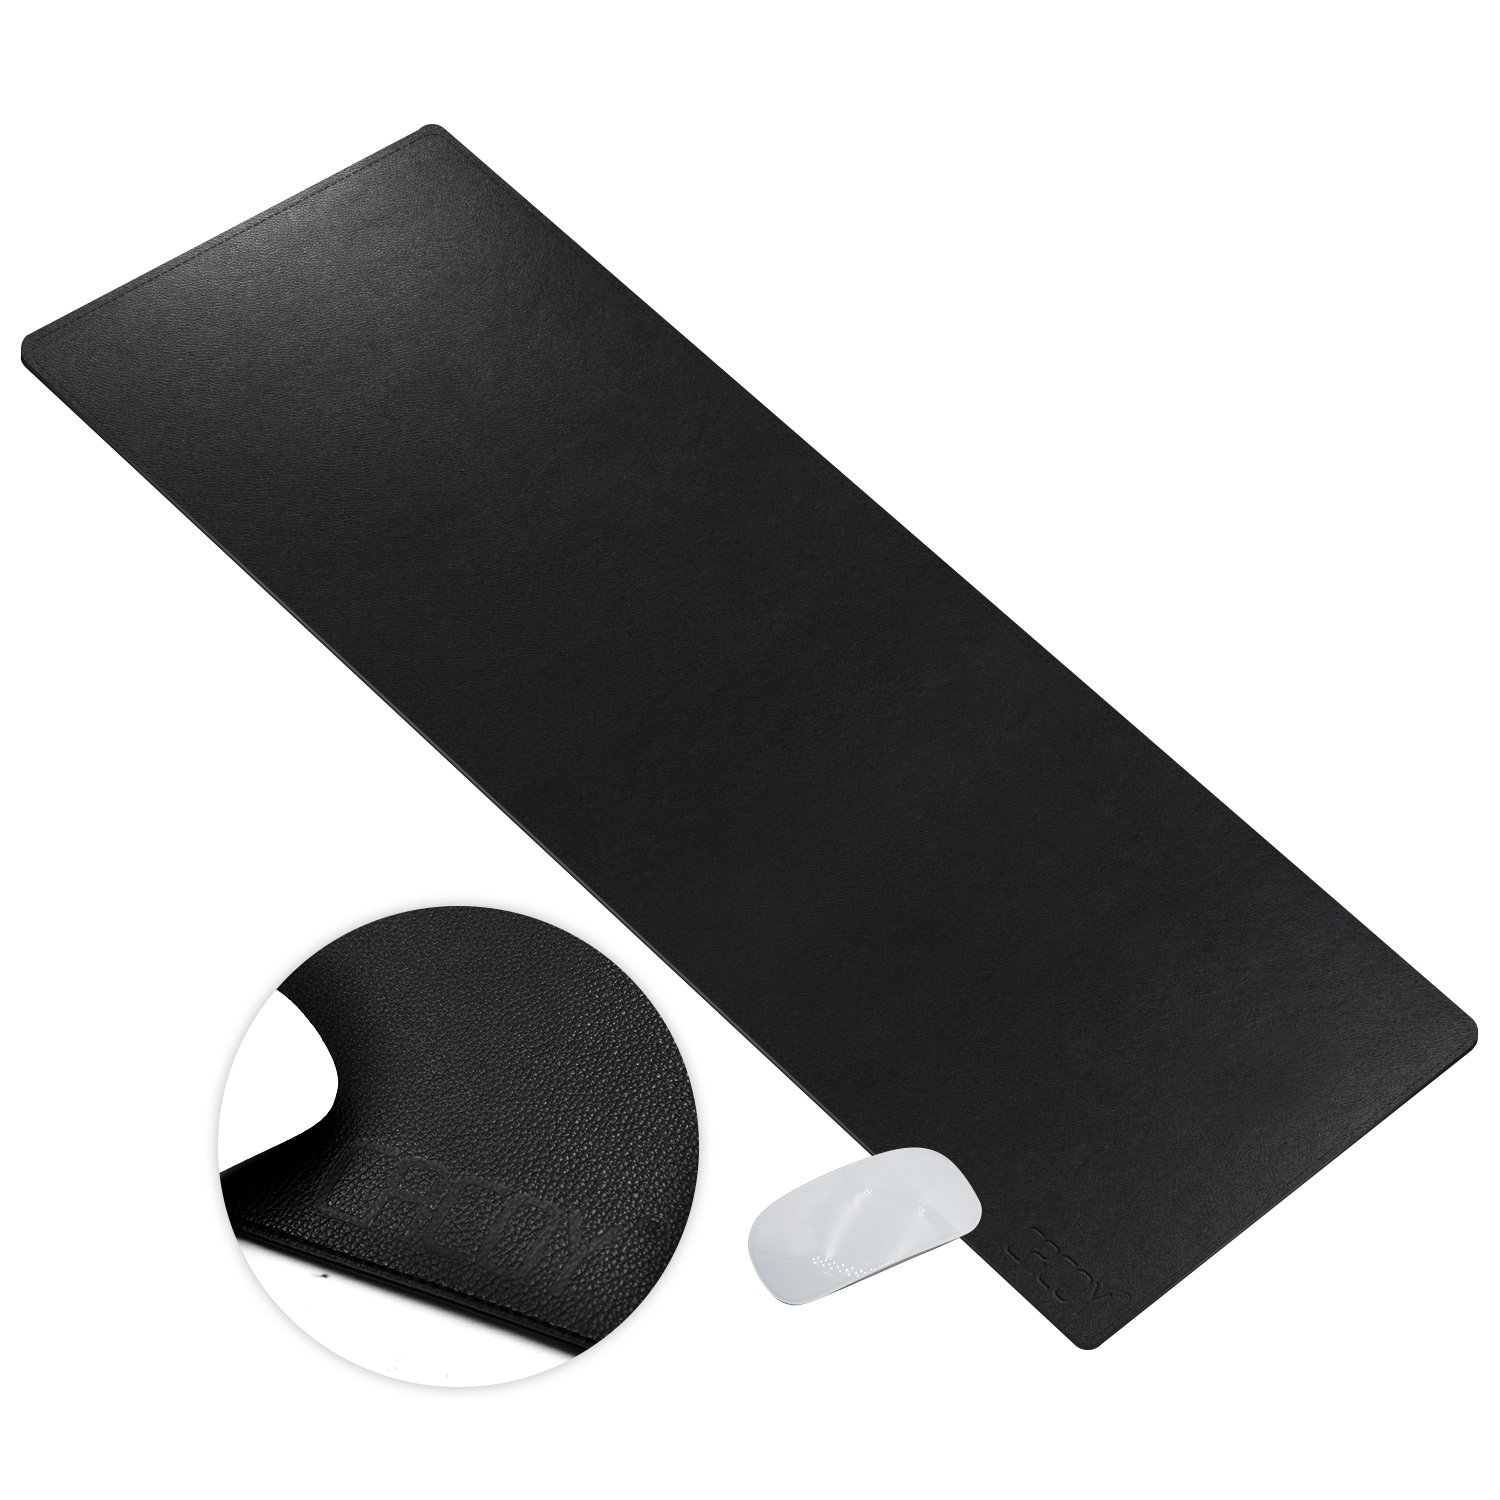 "Cacoy Extended PU Artificial Leather Desk Pads Protector-Size 39.4""L x 15.7""W-Large Smooth Surface Waterproof Mouse Pad Desktop Protective Mat for Home&Office Table Computer Laptop Keyboard Pad-Black"